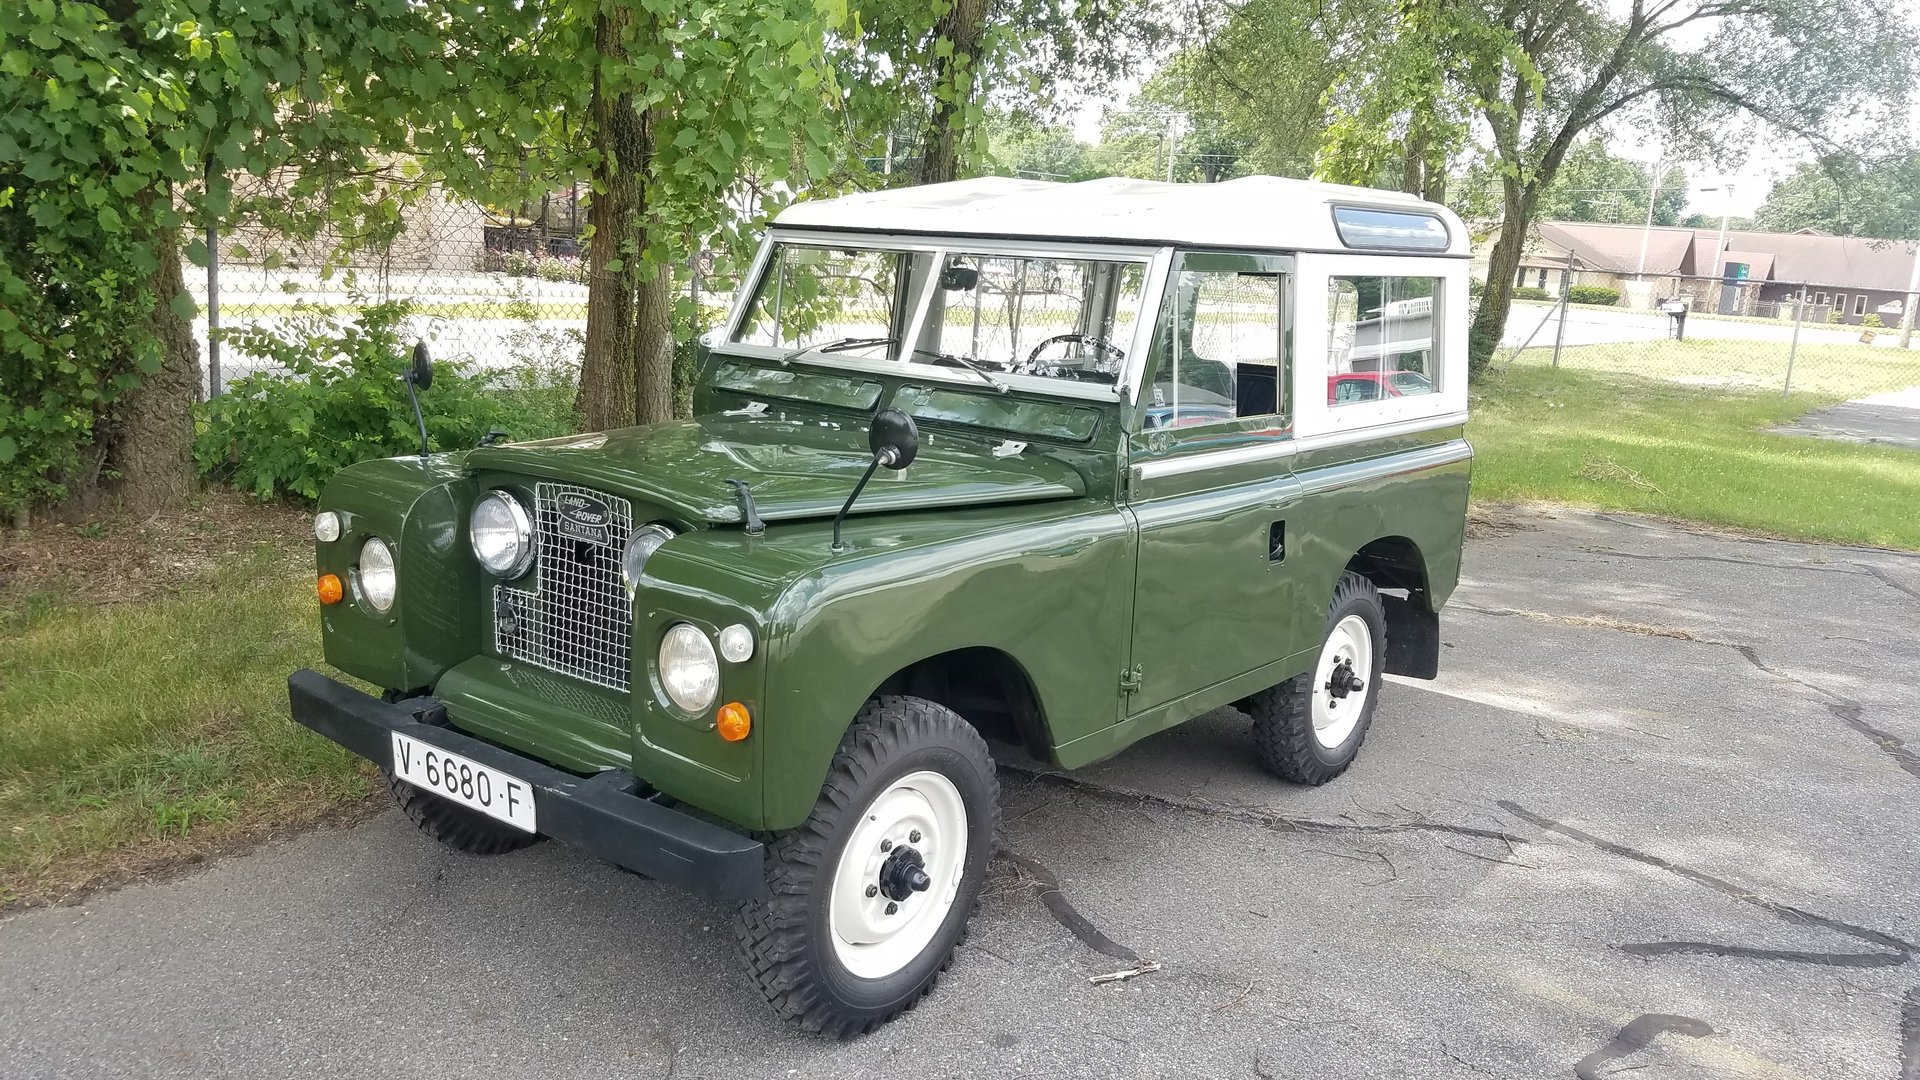 31655d0330b8 hd 1973 land rover series iia